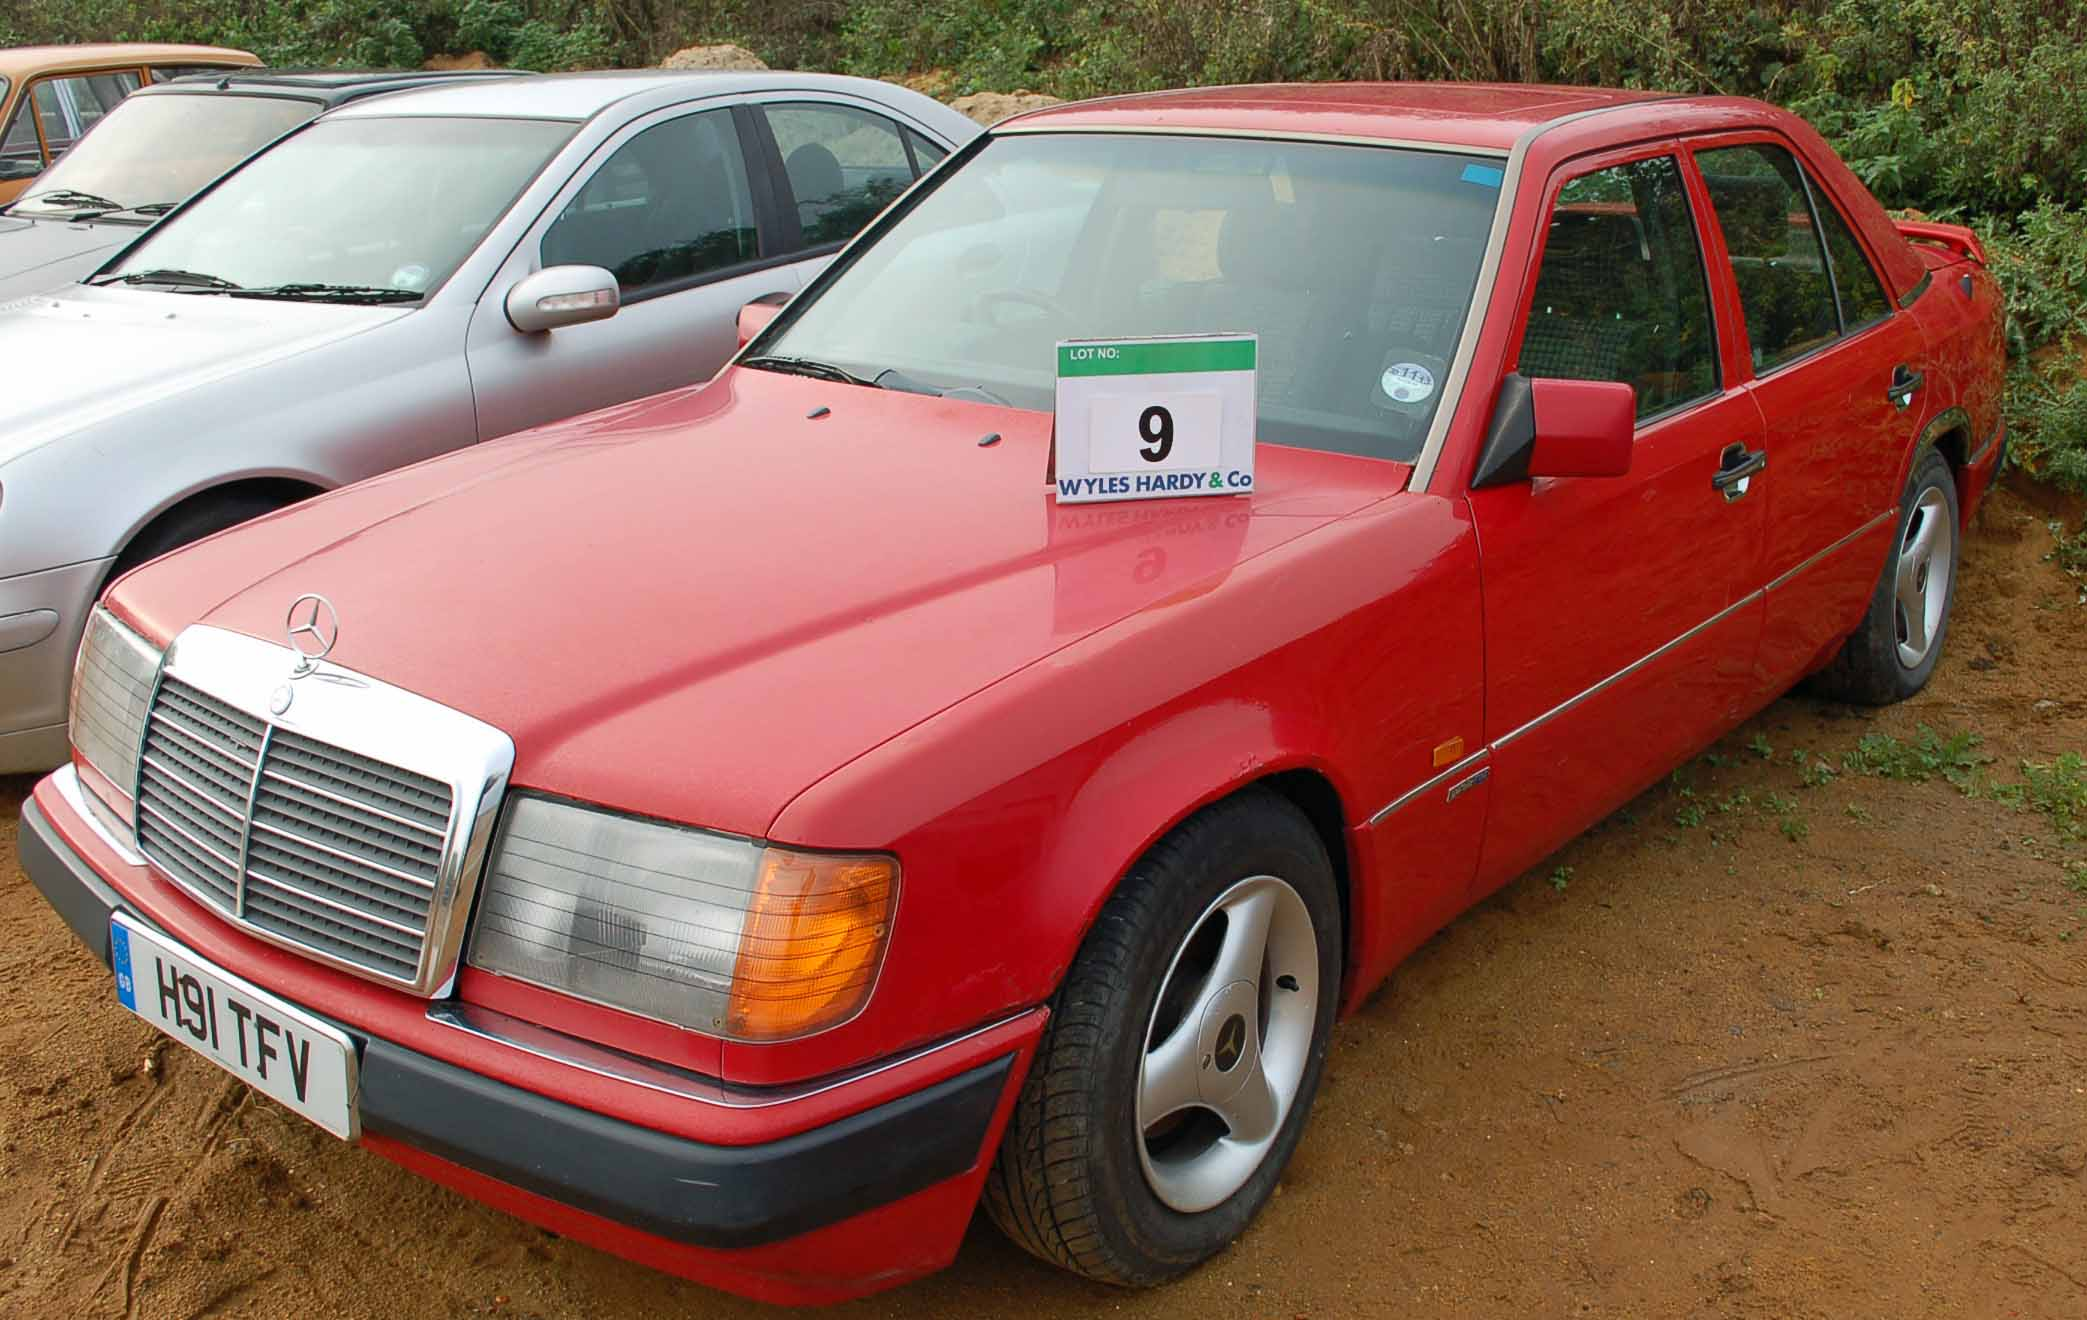 Lot 9 - A MERCEDES 230 E 4-Door Auto, Registration No: H91 TFV, First Registered: 05/06/1991, Recorded